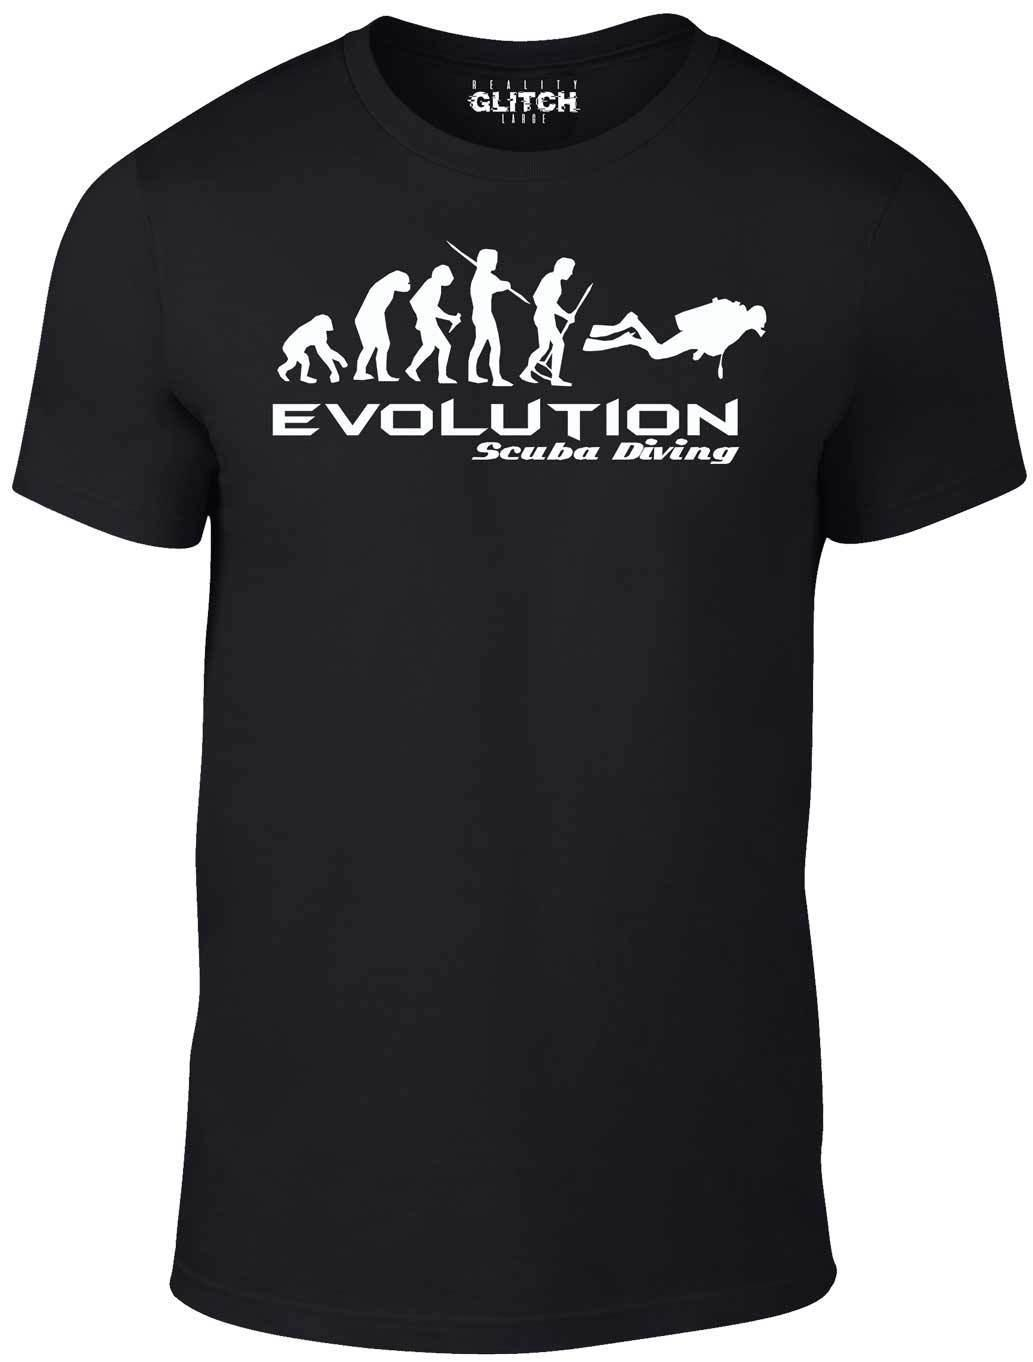 4181bfba Evolution Of Scuba Diving T Shirt Funny T Shirt Swim Retro Sea Cool Boat  Party Funny Unisex Casual Tee Gift Mens T Shirt Cool Tshirt Designs From ...